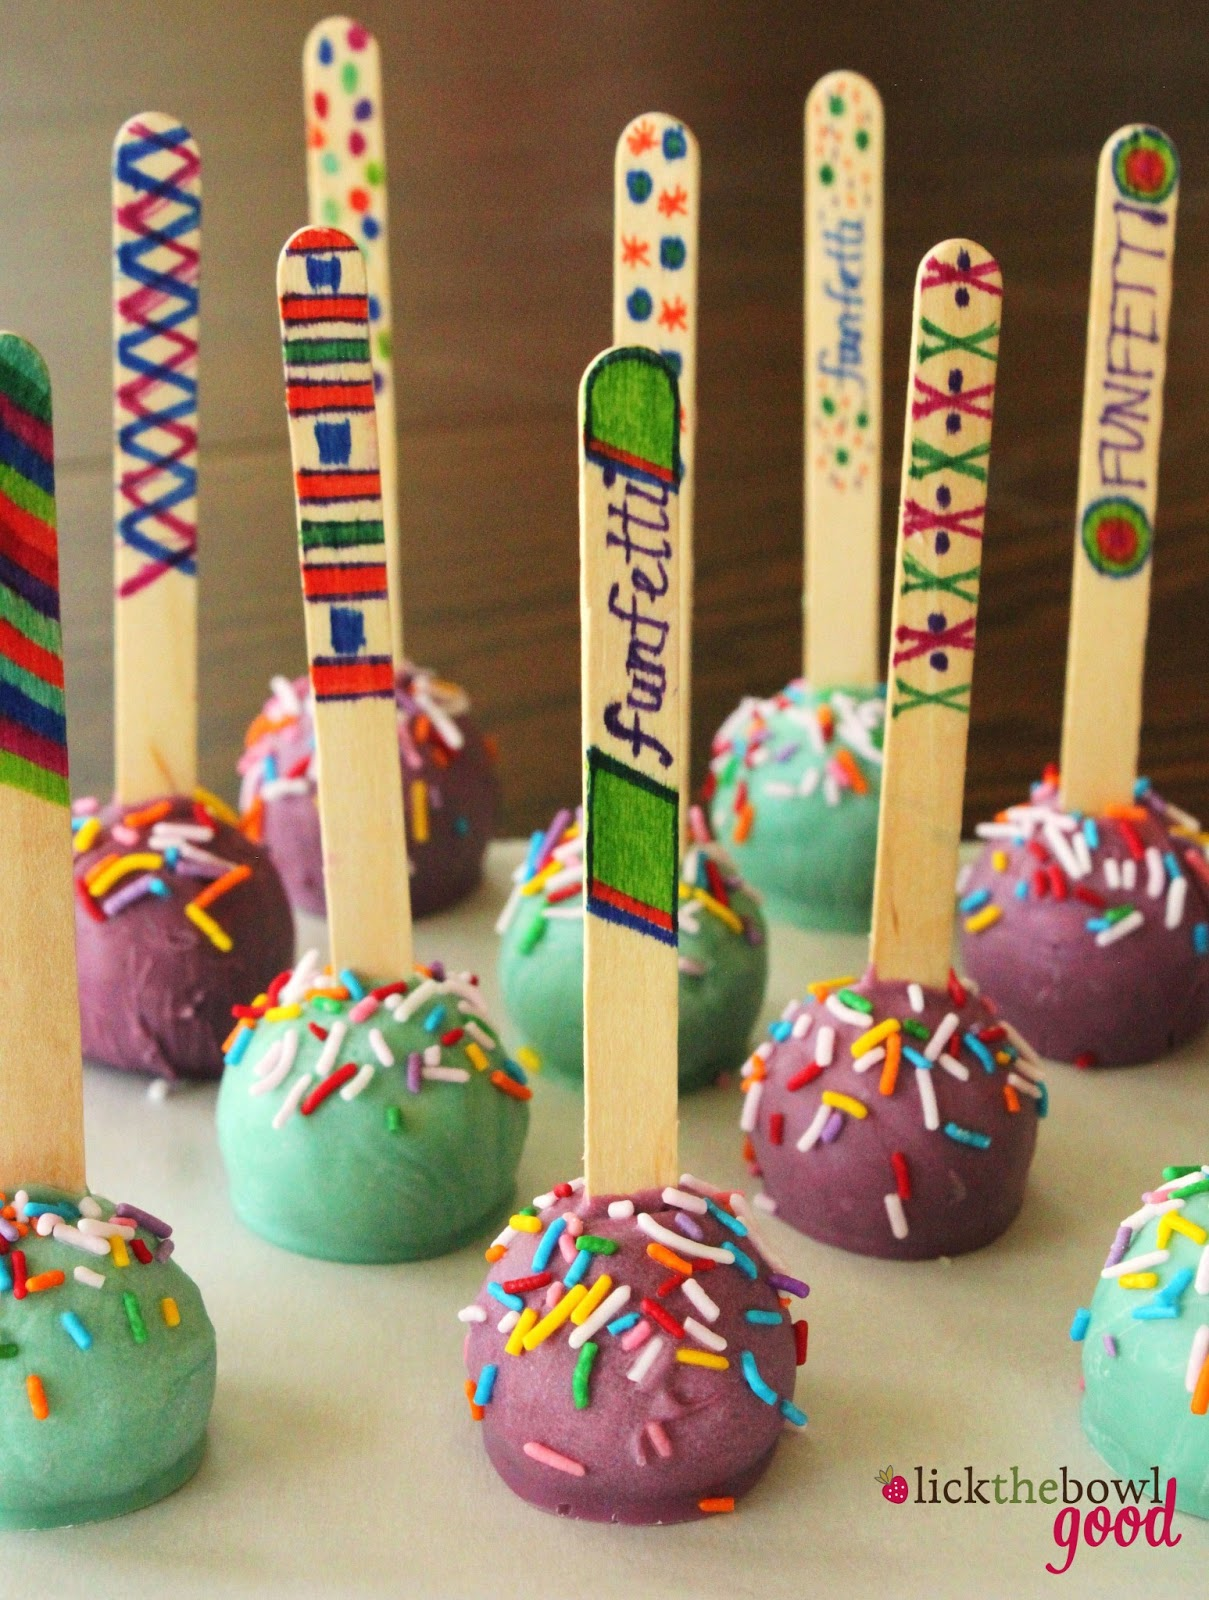 Lick The Bowl Good My Birthday Cakes And No Bake Cake Pops